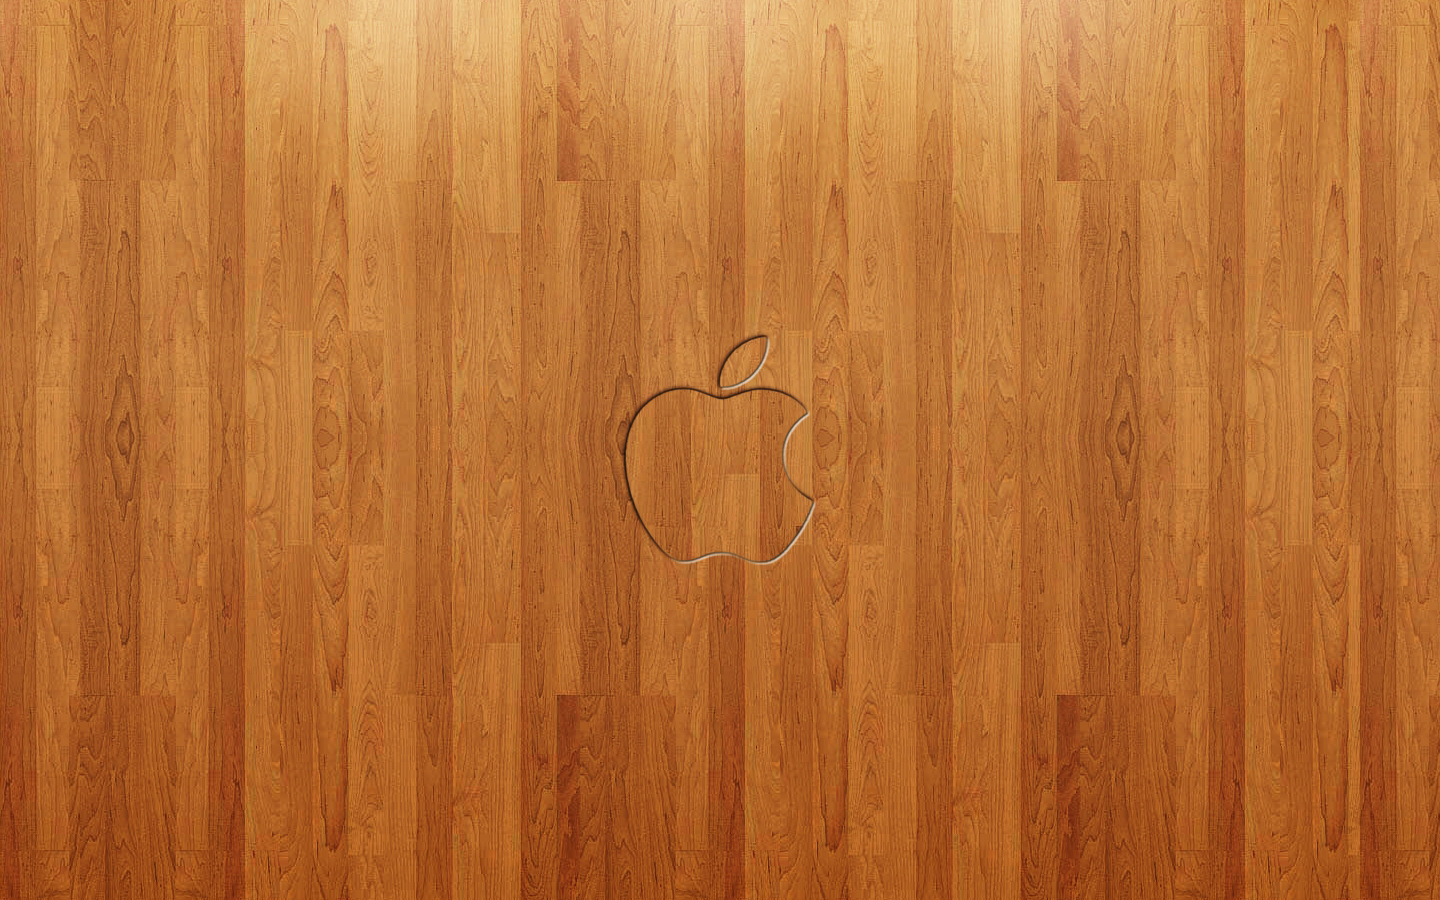 Http Wallpaperstock Net Wooden Logo Wallpapers 12685 1440x900 1 Html